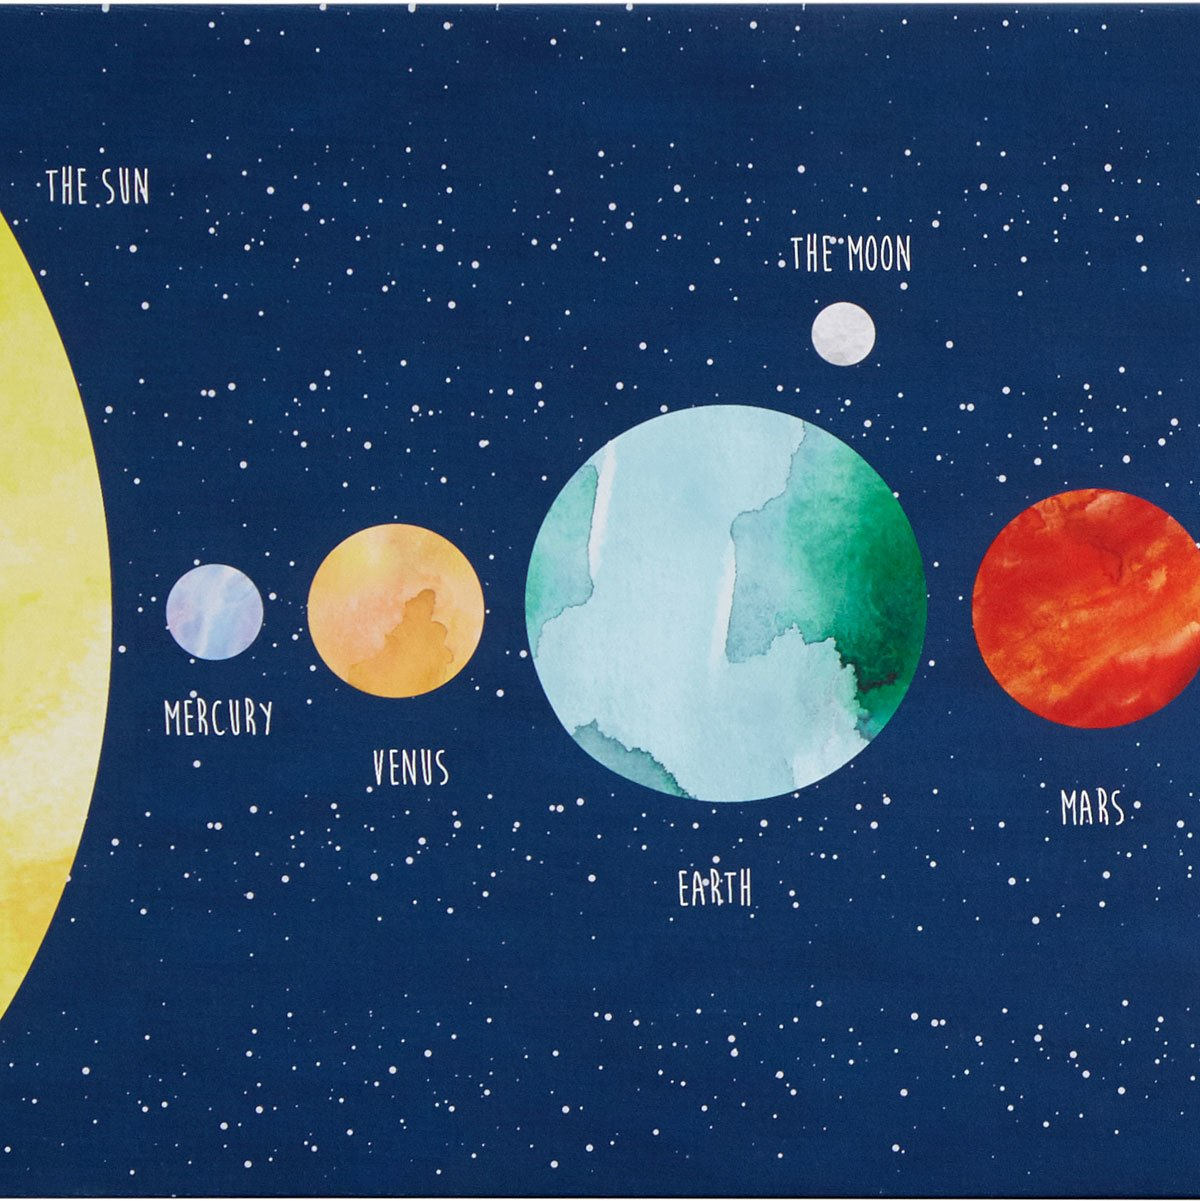 Personalized Solar System Wall Art | map of solar system, learn ...